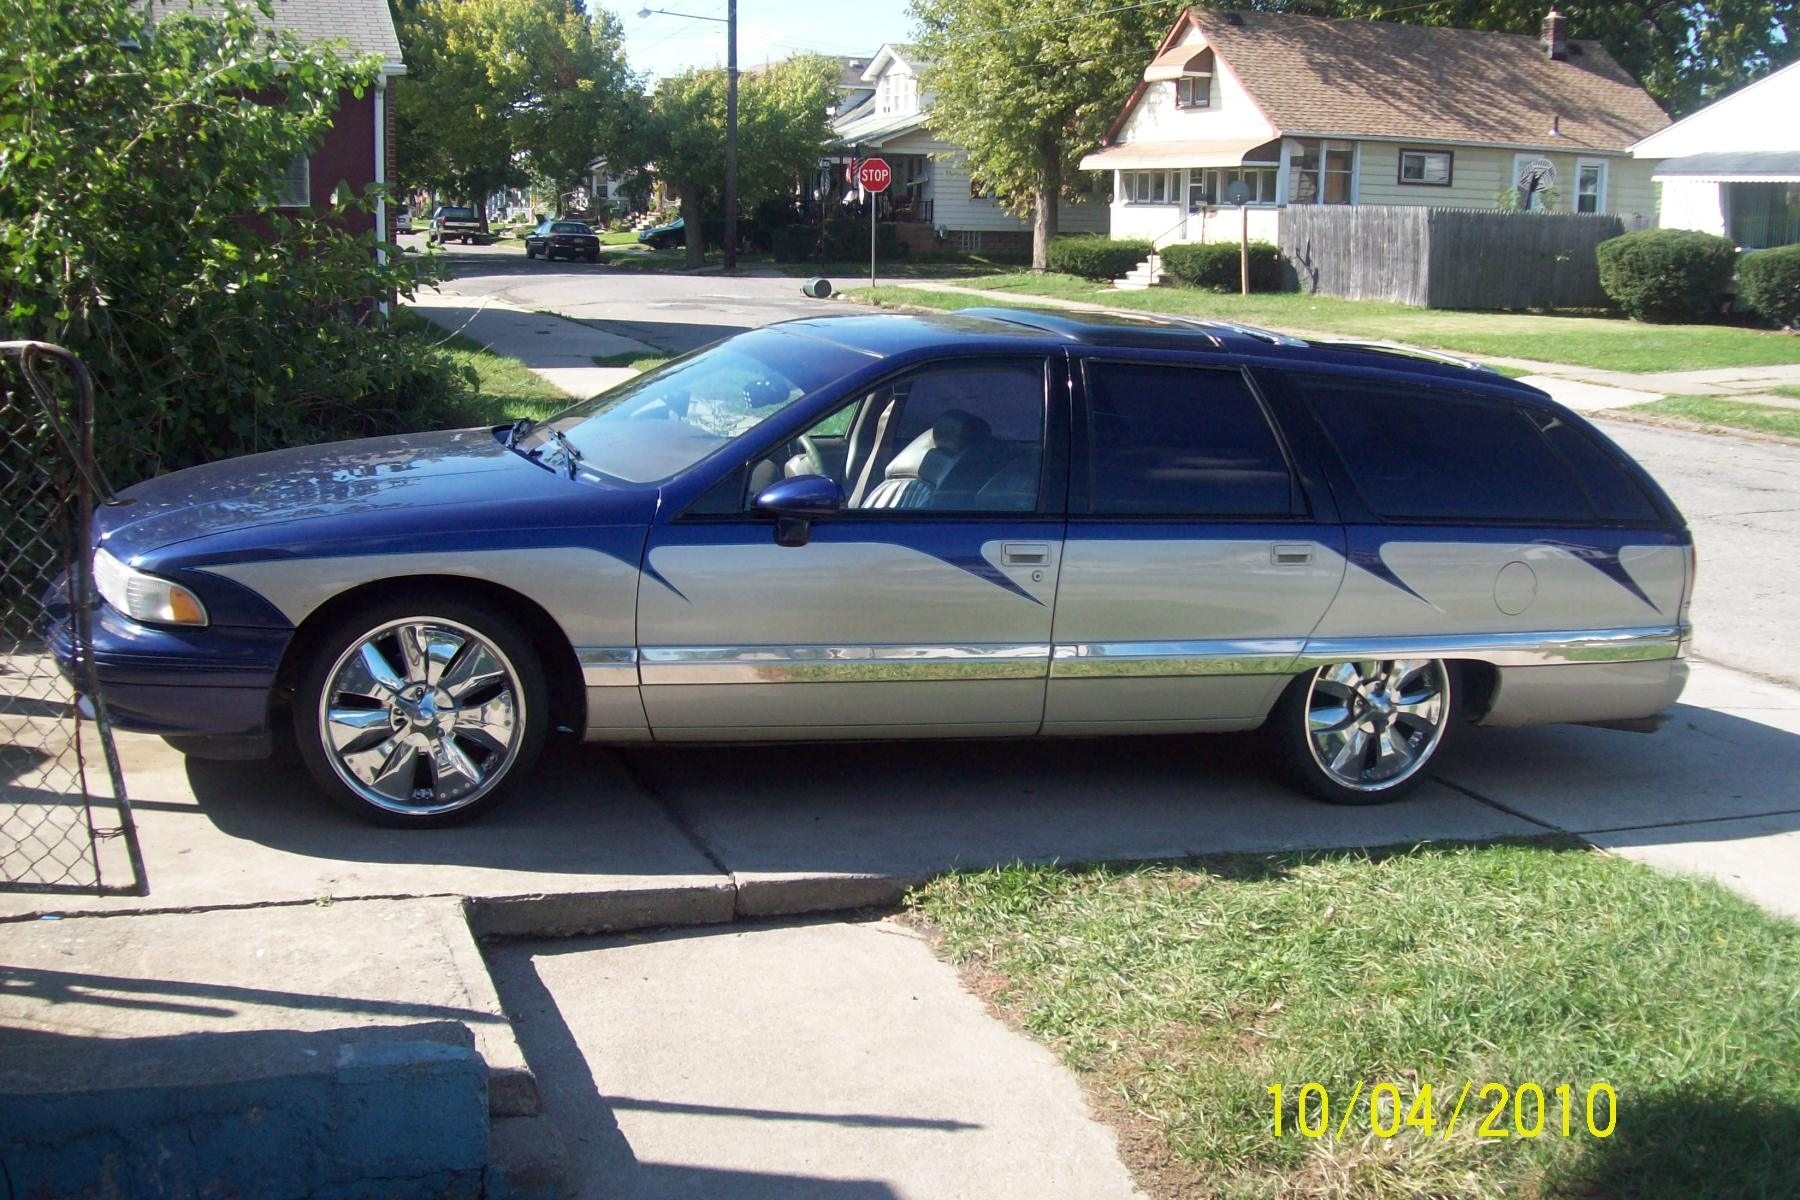 traviswagon1 1993 buick roadmasterestate wagon 4d specs photos modification info at cardomain cardomain